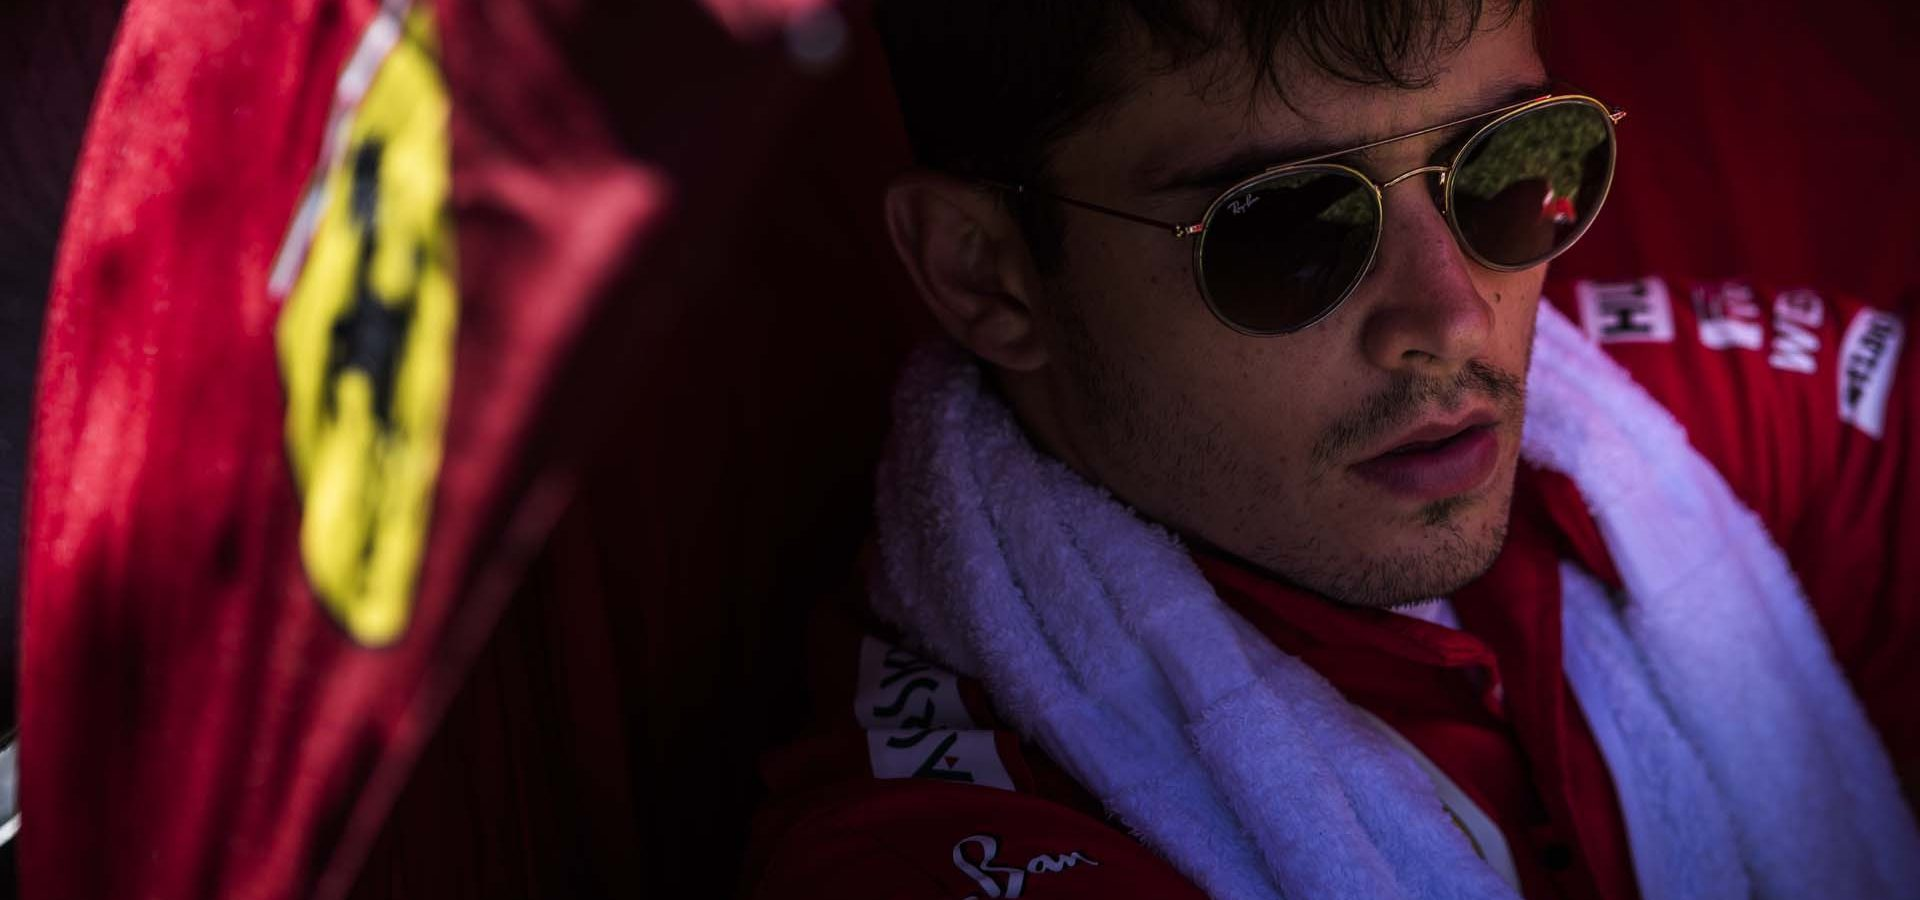 Charles Leclerc during the FIA Formula One World Championship 2019 in Spielberg, Austria on June 30, 2019 // Philip Platzer/Red Bull Content Pool // AP-1ZTAR97511W11 // Usage for editorial use only // Please go to www.redbullcontentpool.com for further information. //